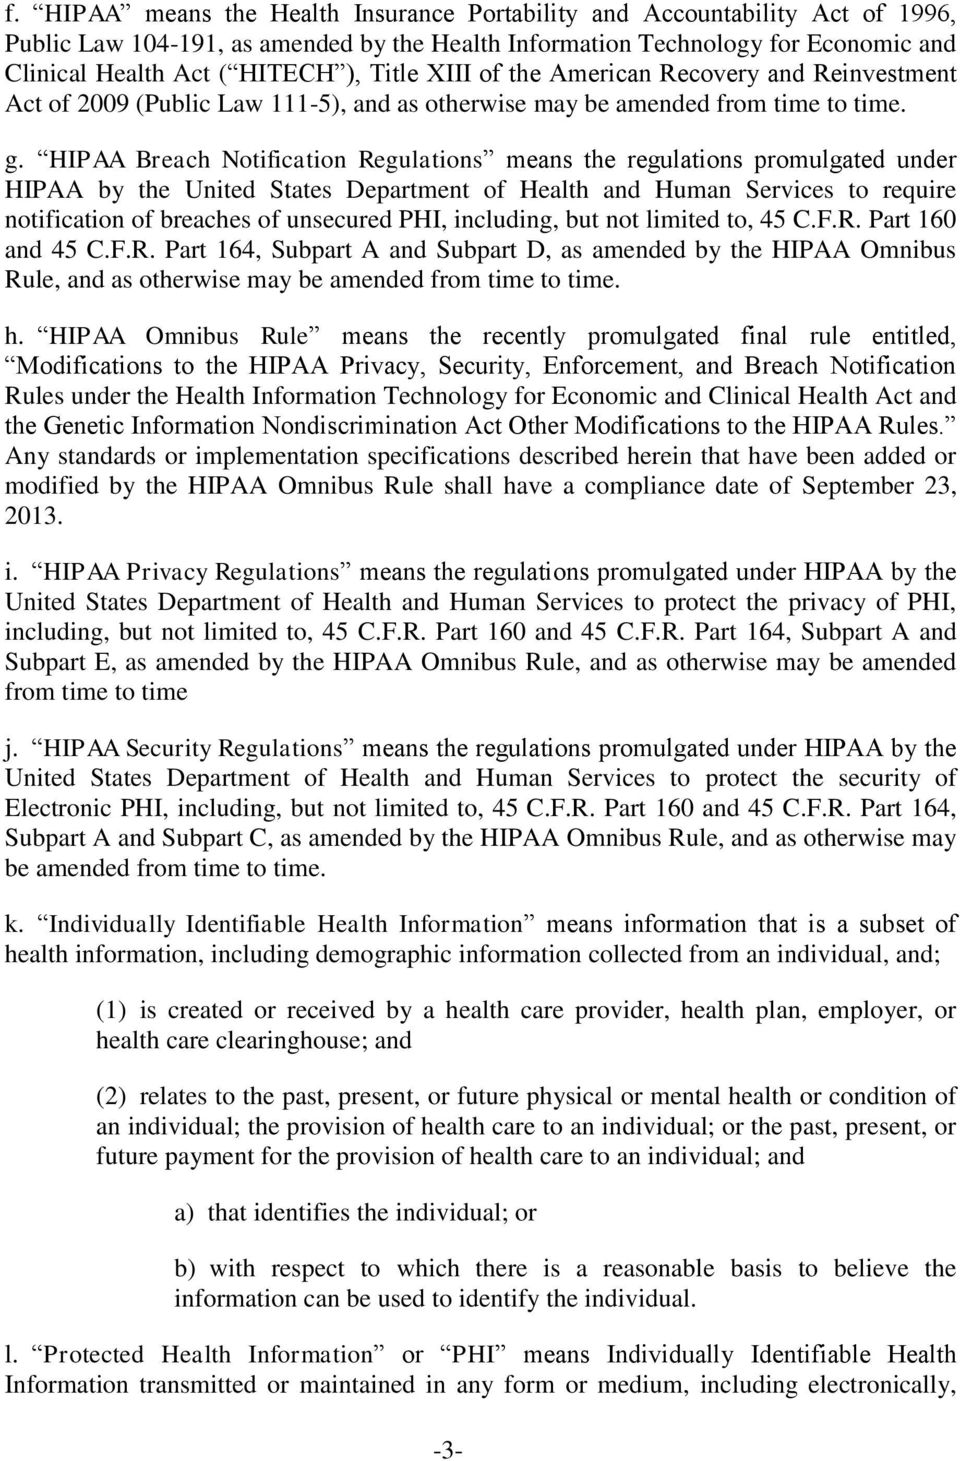 HIPAA Breach Notification Regulations means the regulations promulgated under HIPAA by the United States Department of Health and Human Services to require notification of breaches of unsecured PHI,